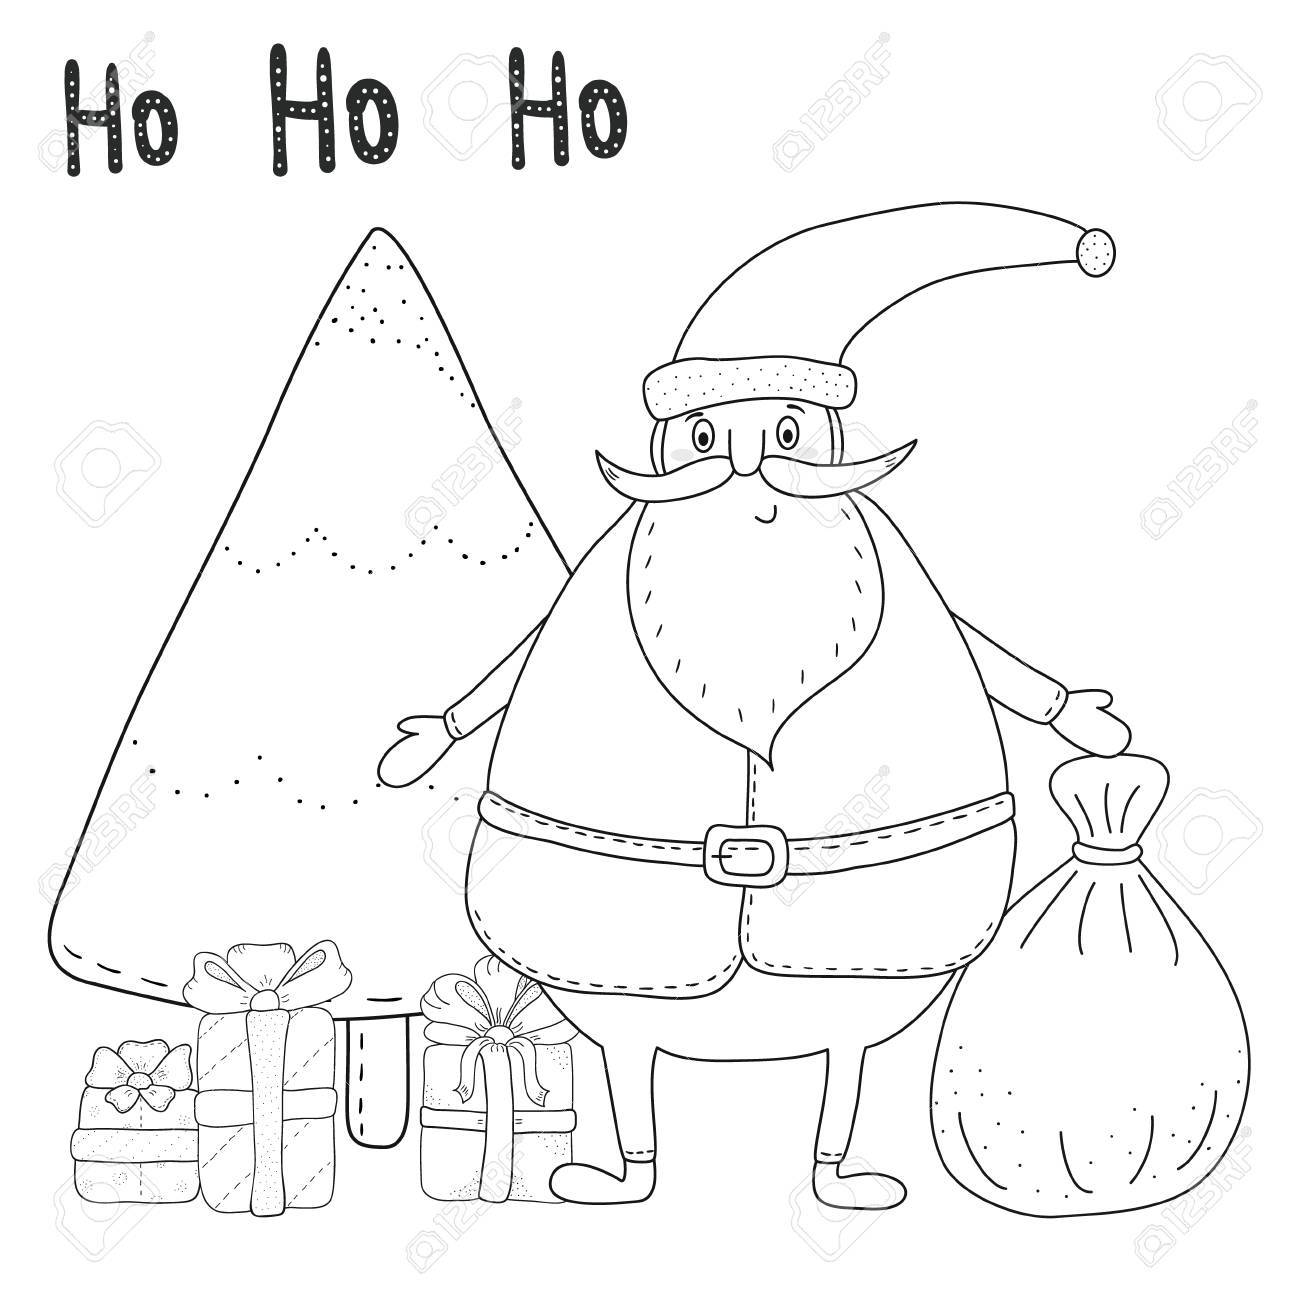 Christmas Coloring Page With Santa Claus Christmas Tree Gift Royalty Free Cliparts Vectors And Stock Illustration Image 67965039